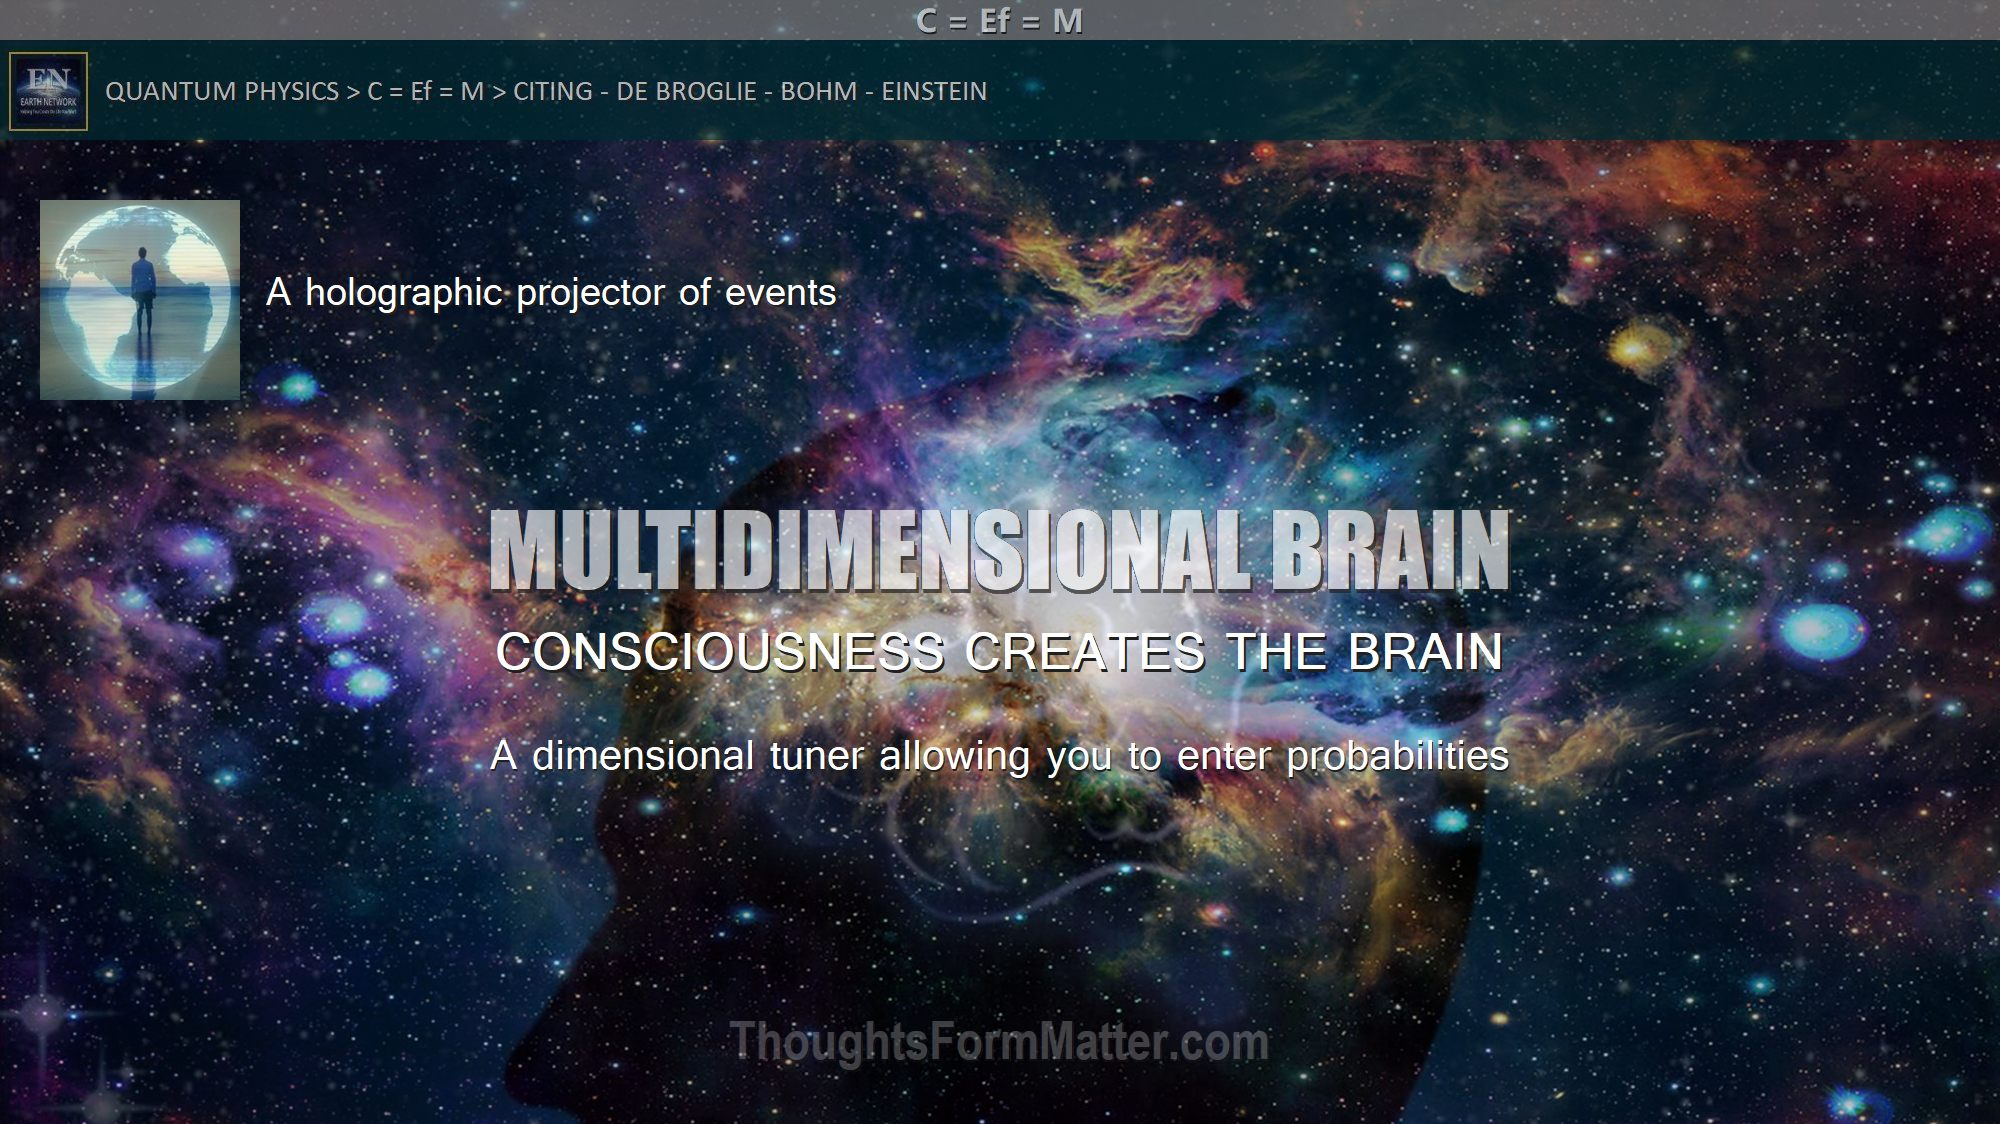 the-brain-does-not-produce-consciousness-thoughts-create-matter-life